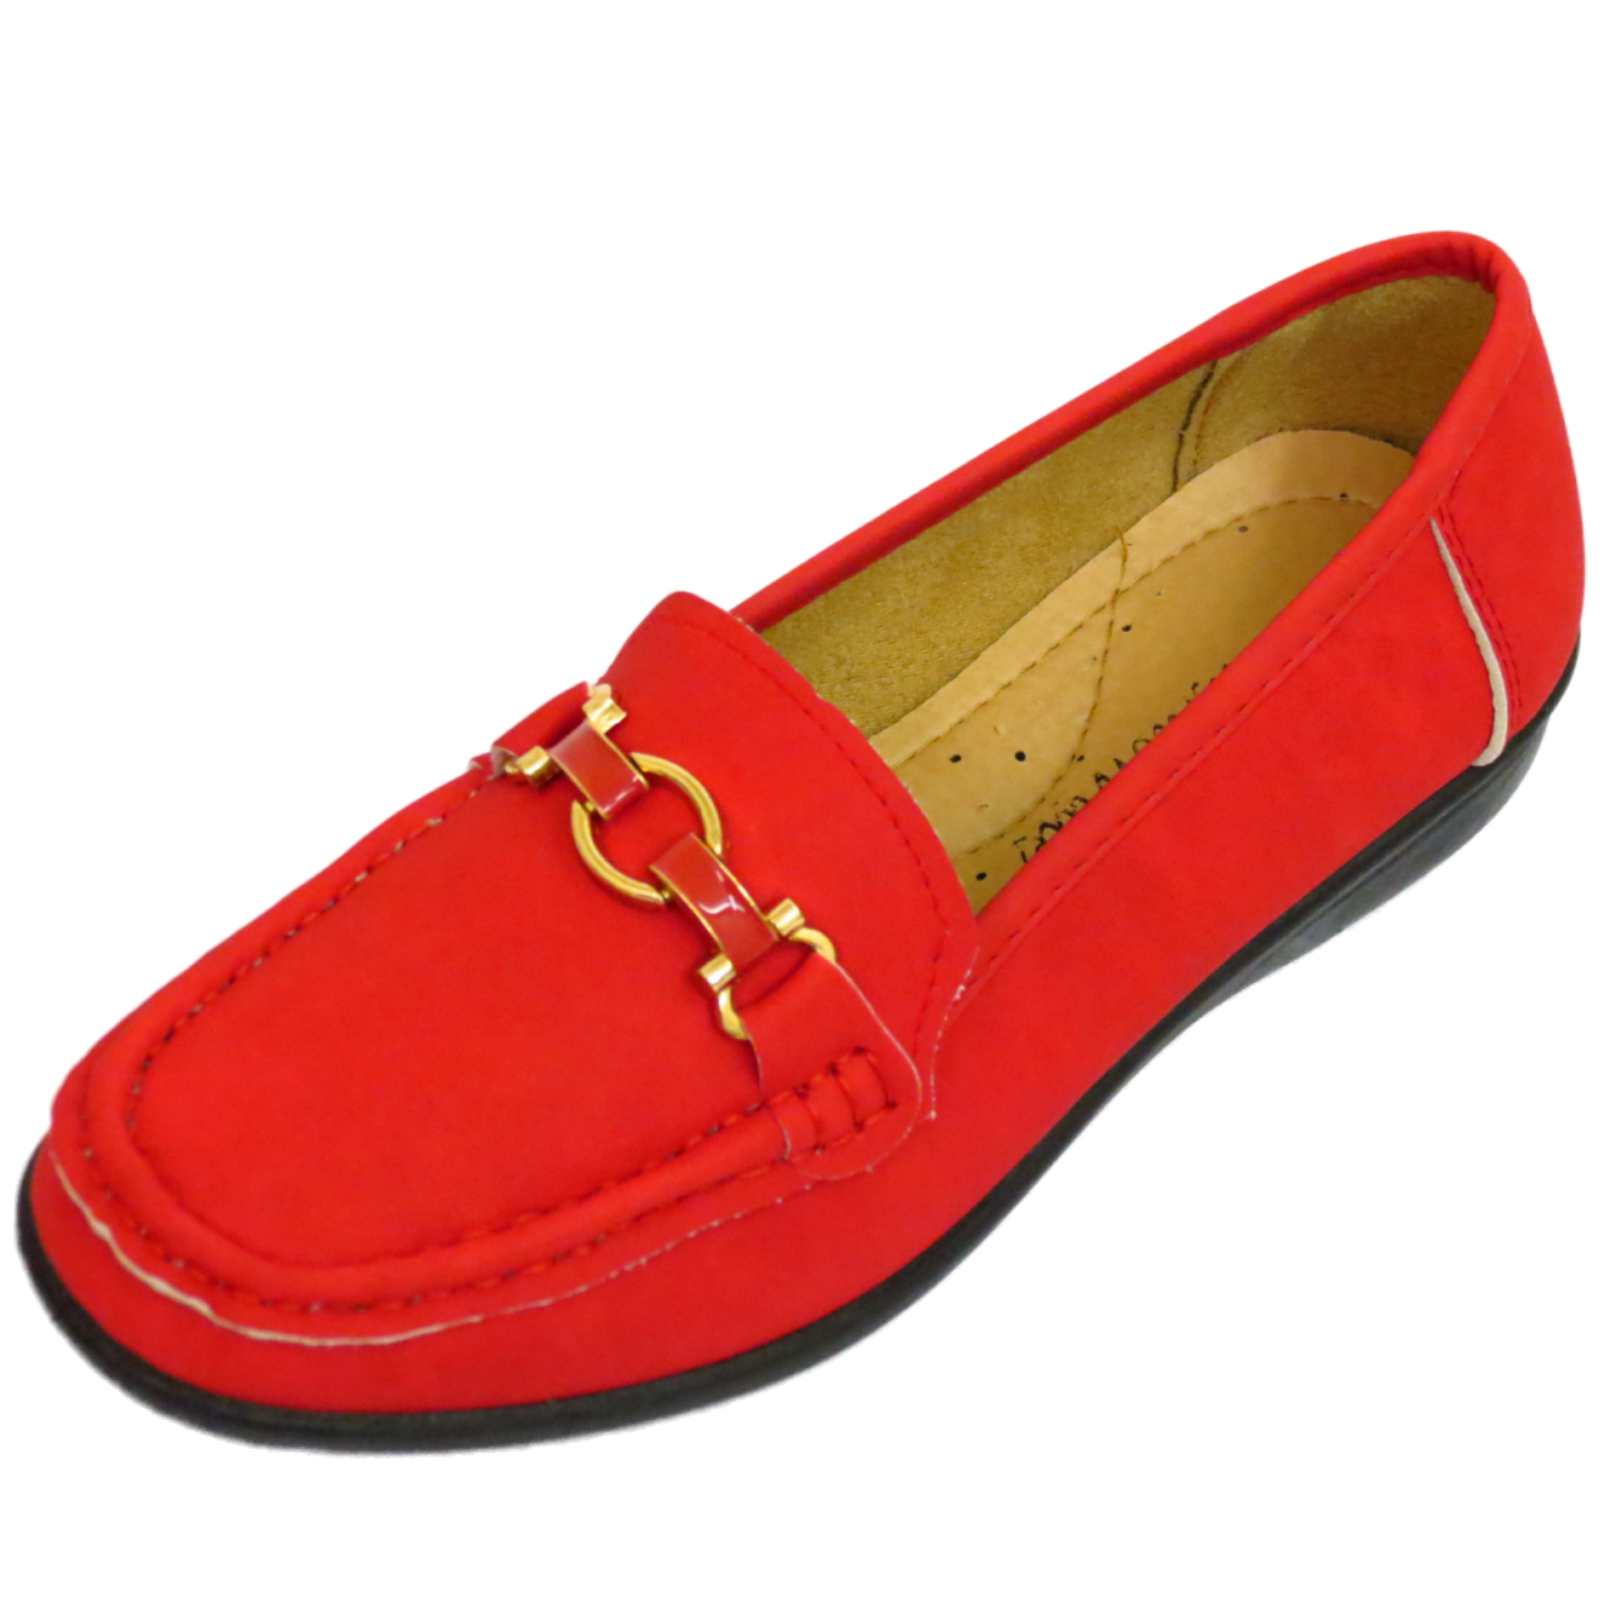 Red Shoes Uk Low Heel Size